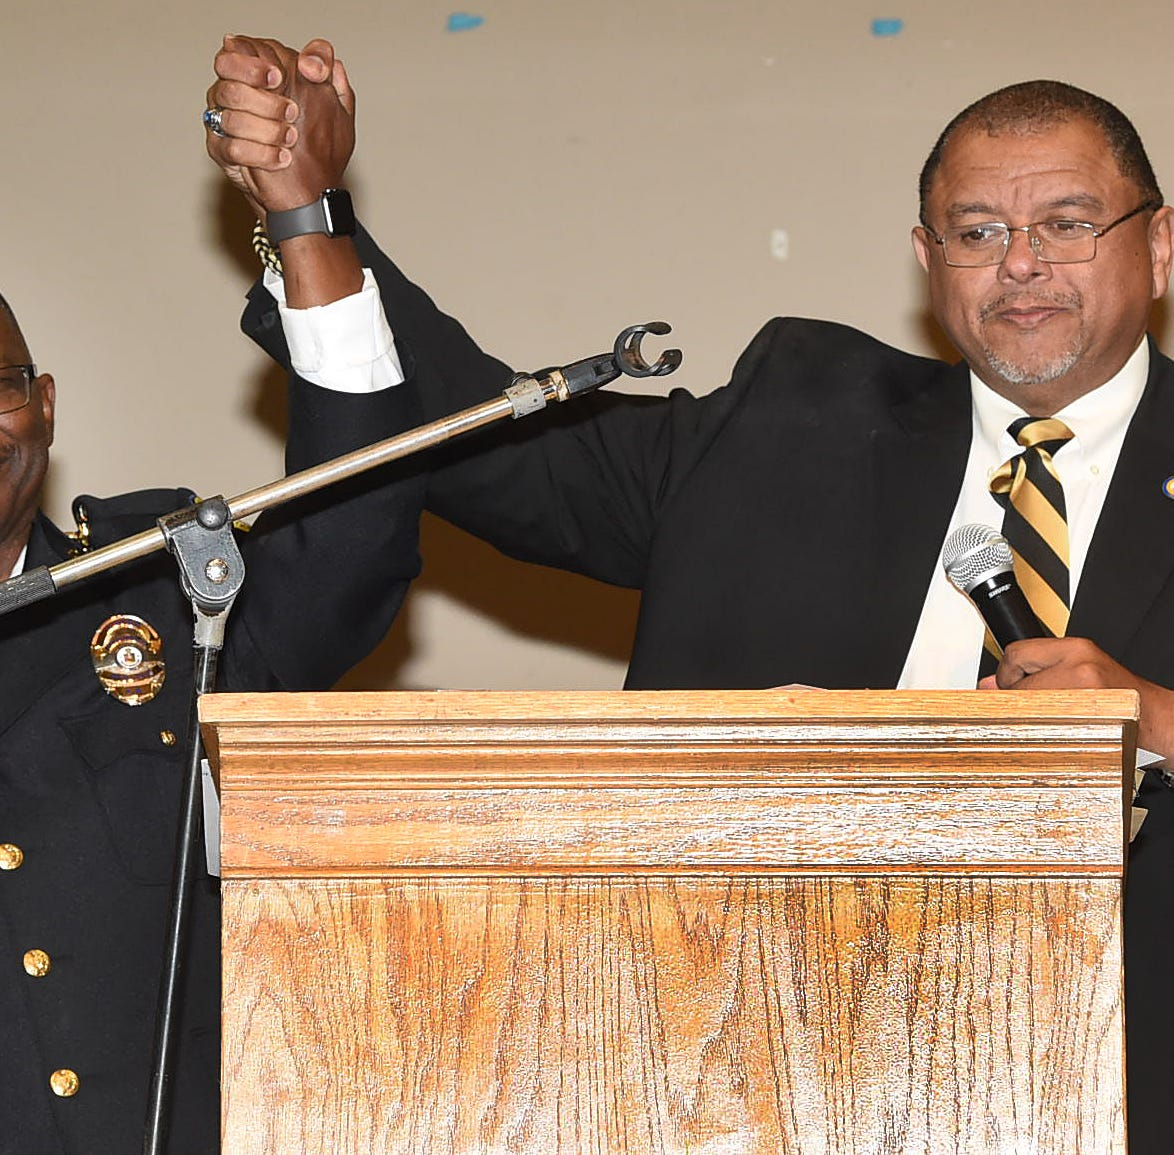 New mayor, police chief promise to improve  trust, safety